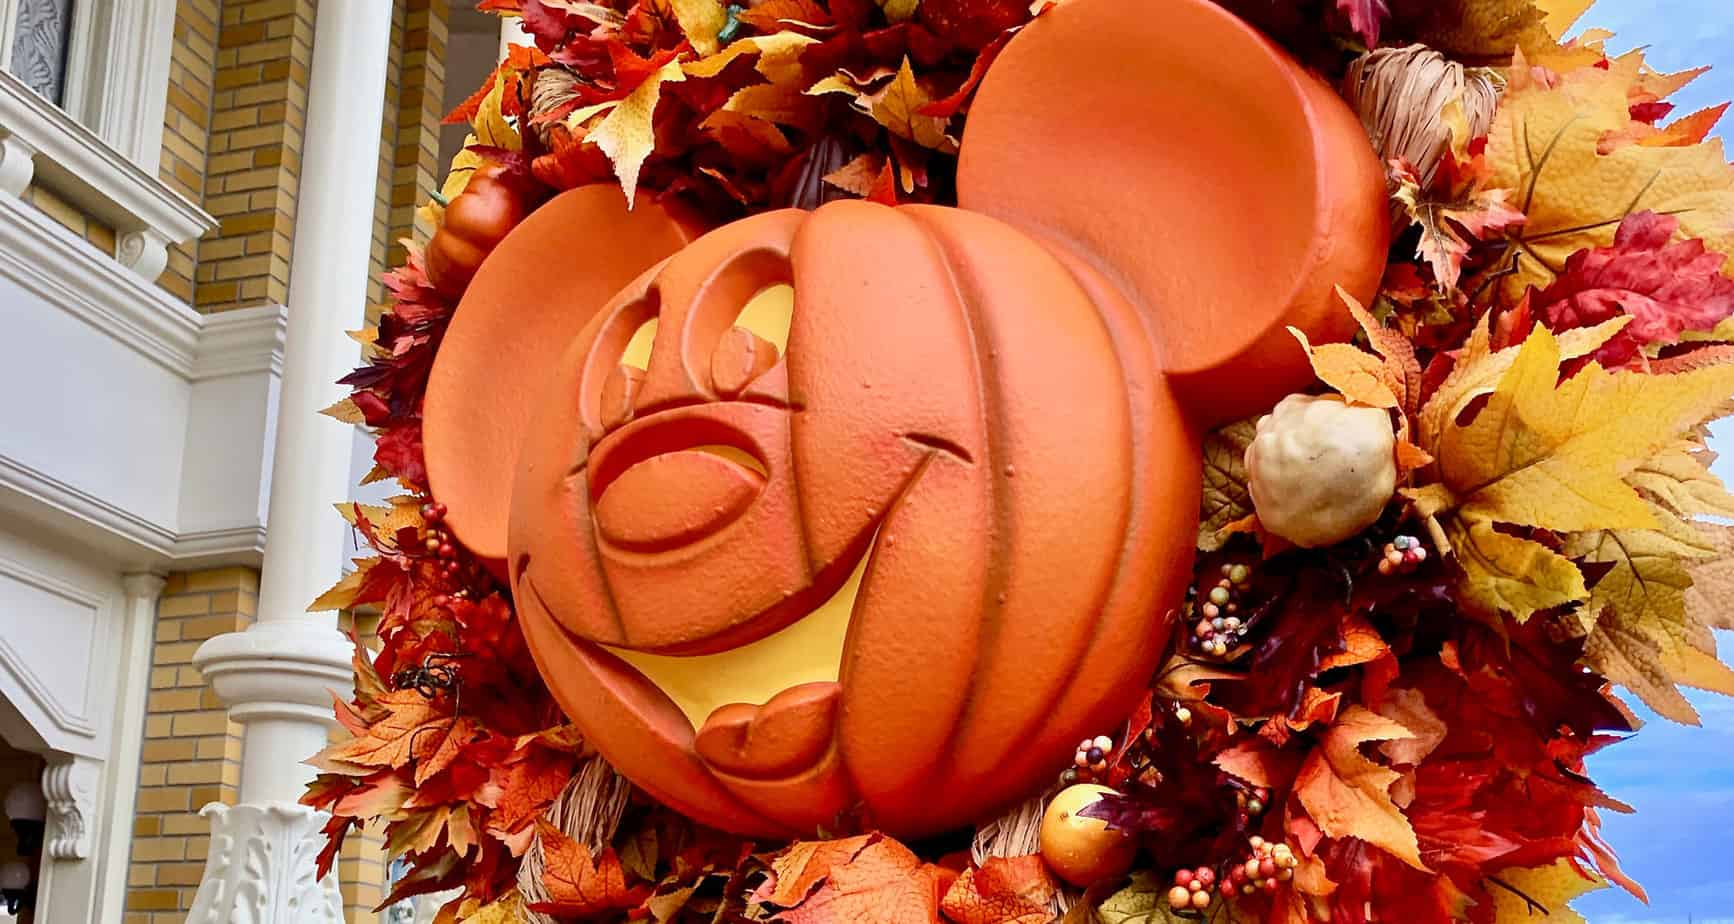 Halloween Decorations at Disney World are Coming! 2